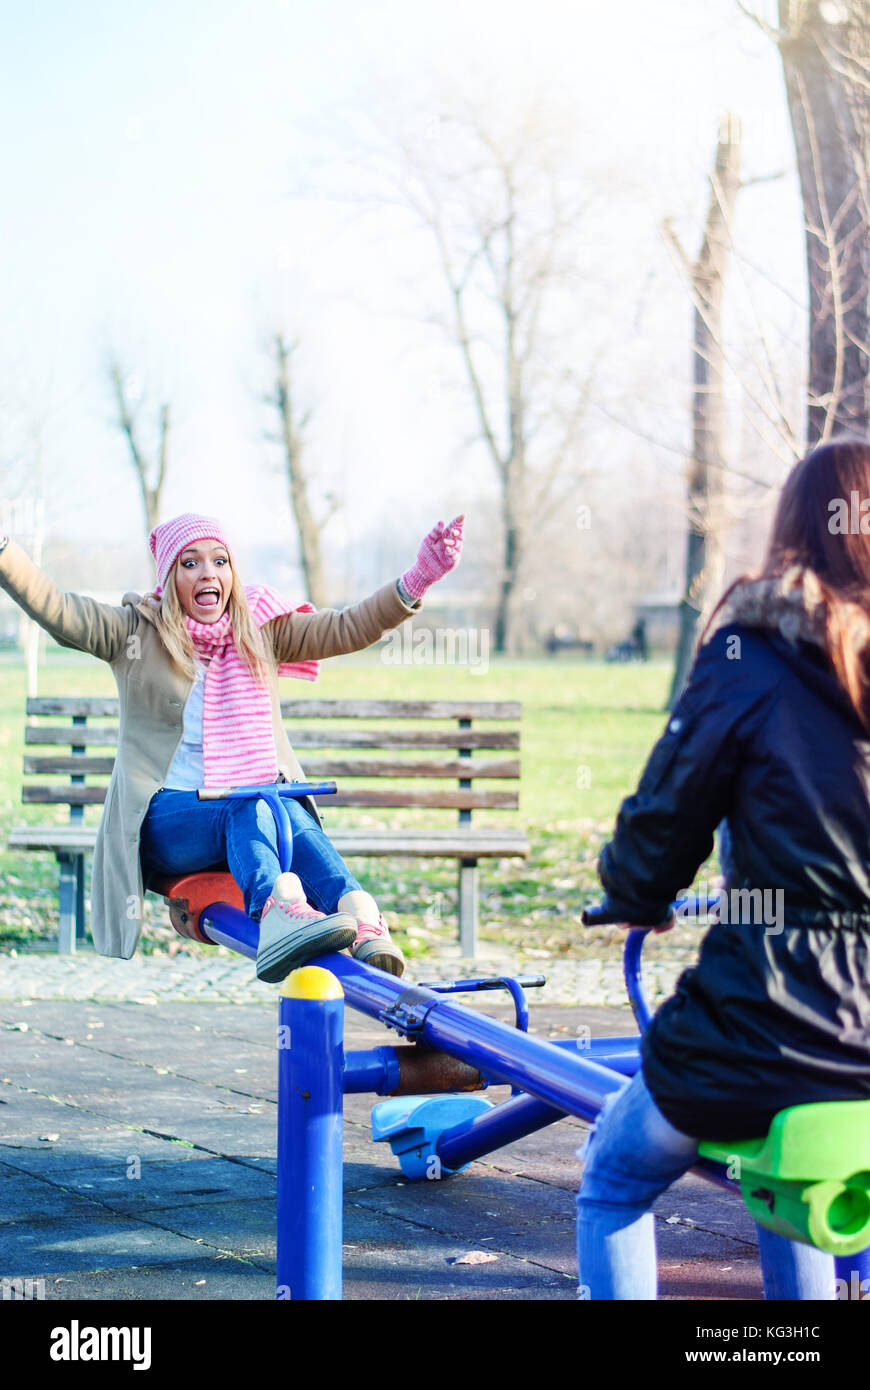 Two teens hang out at the playground - Stock Image